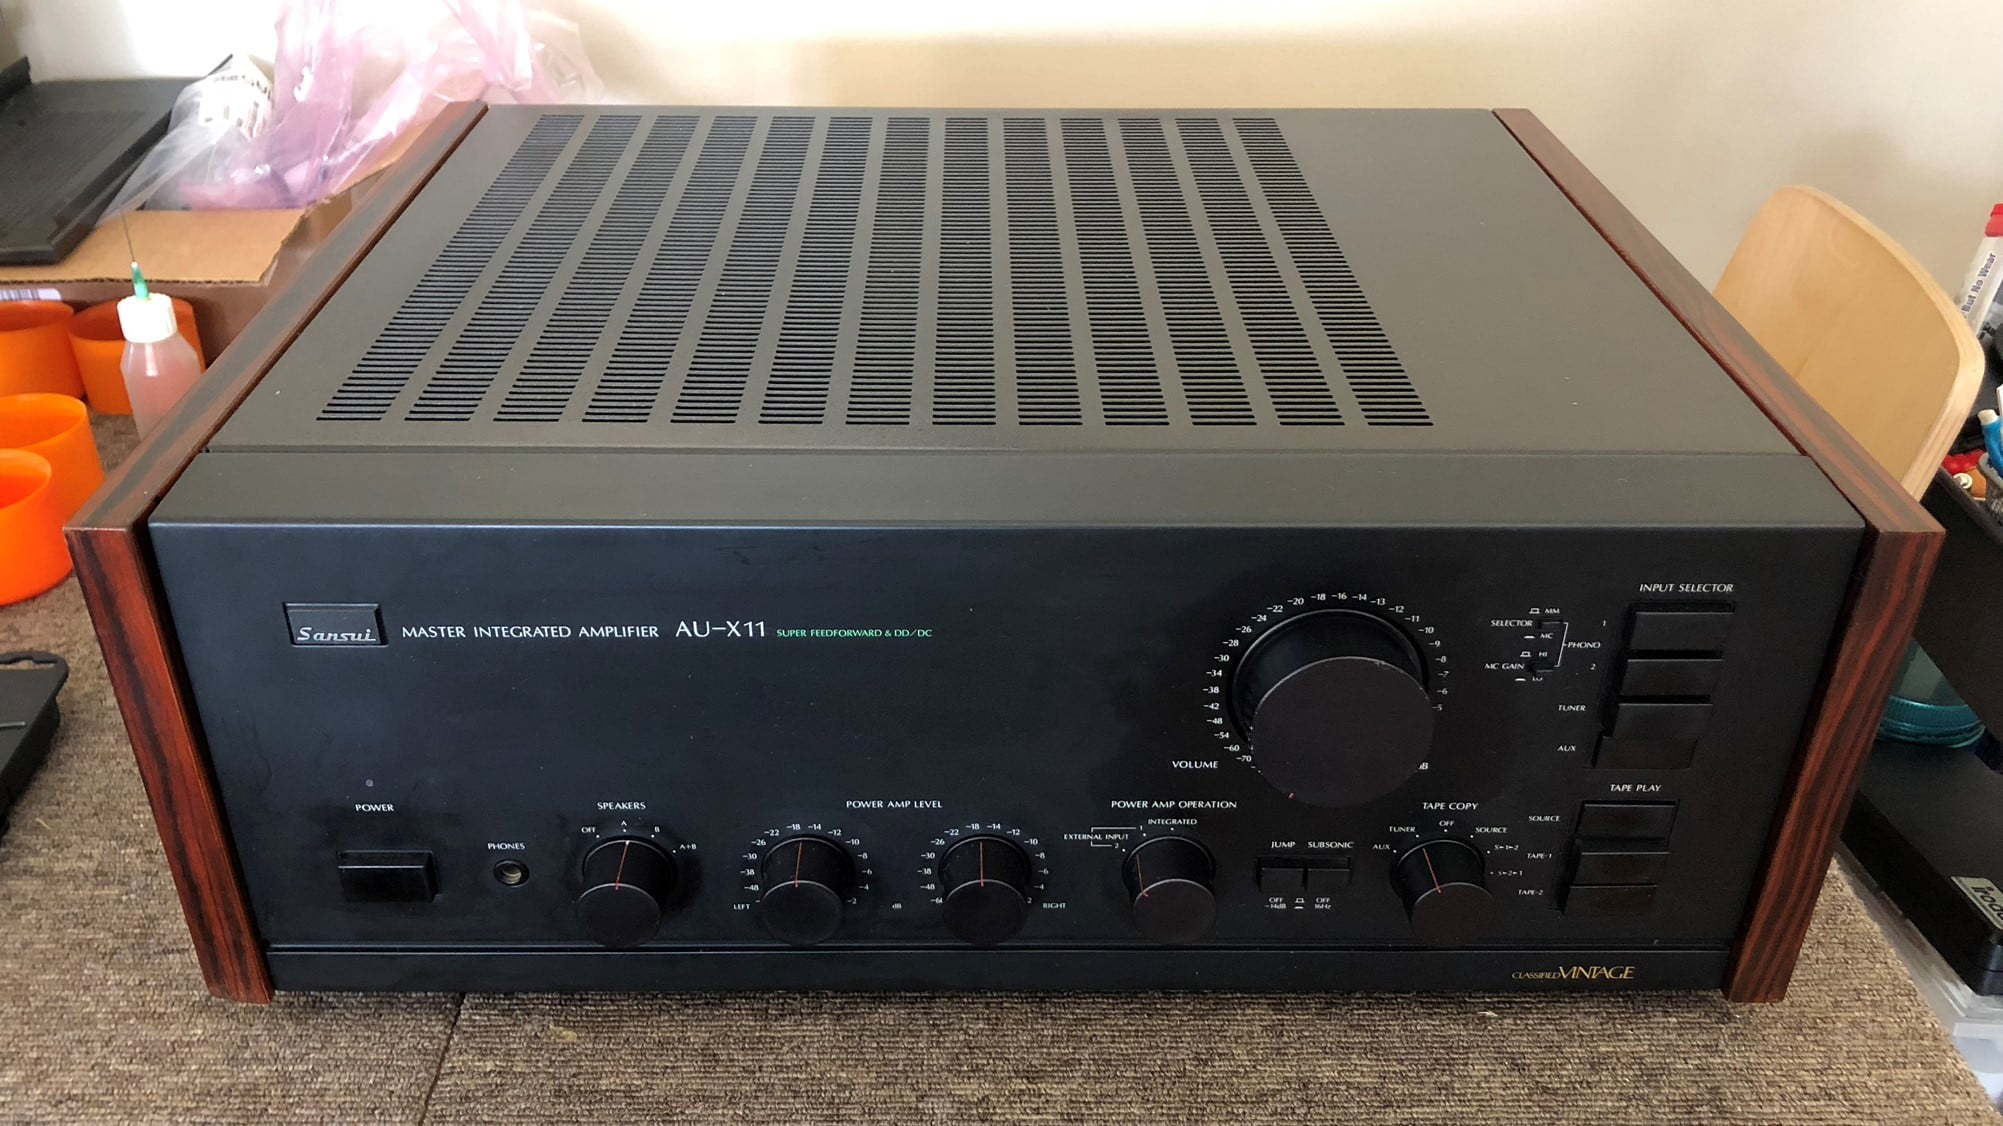 Ultra-Rare Sansui AU-X11 Master Integrated Amplifier